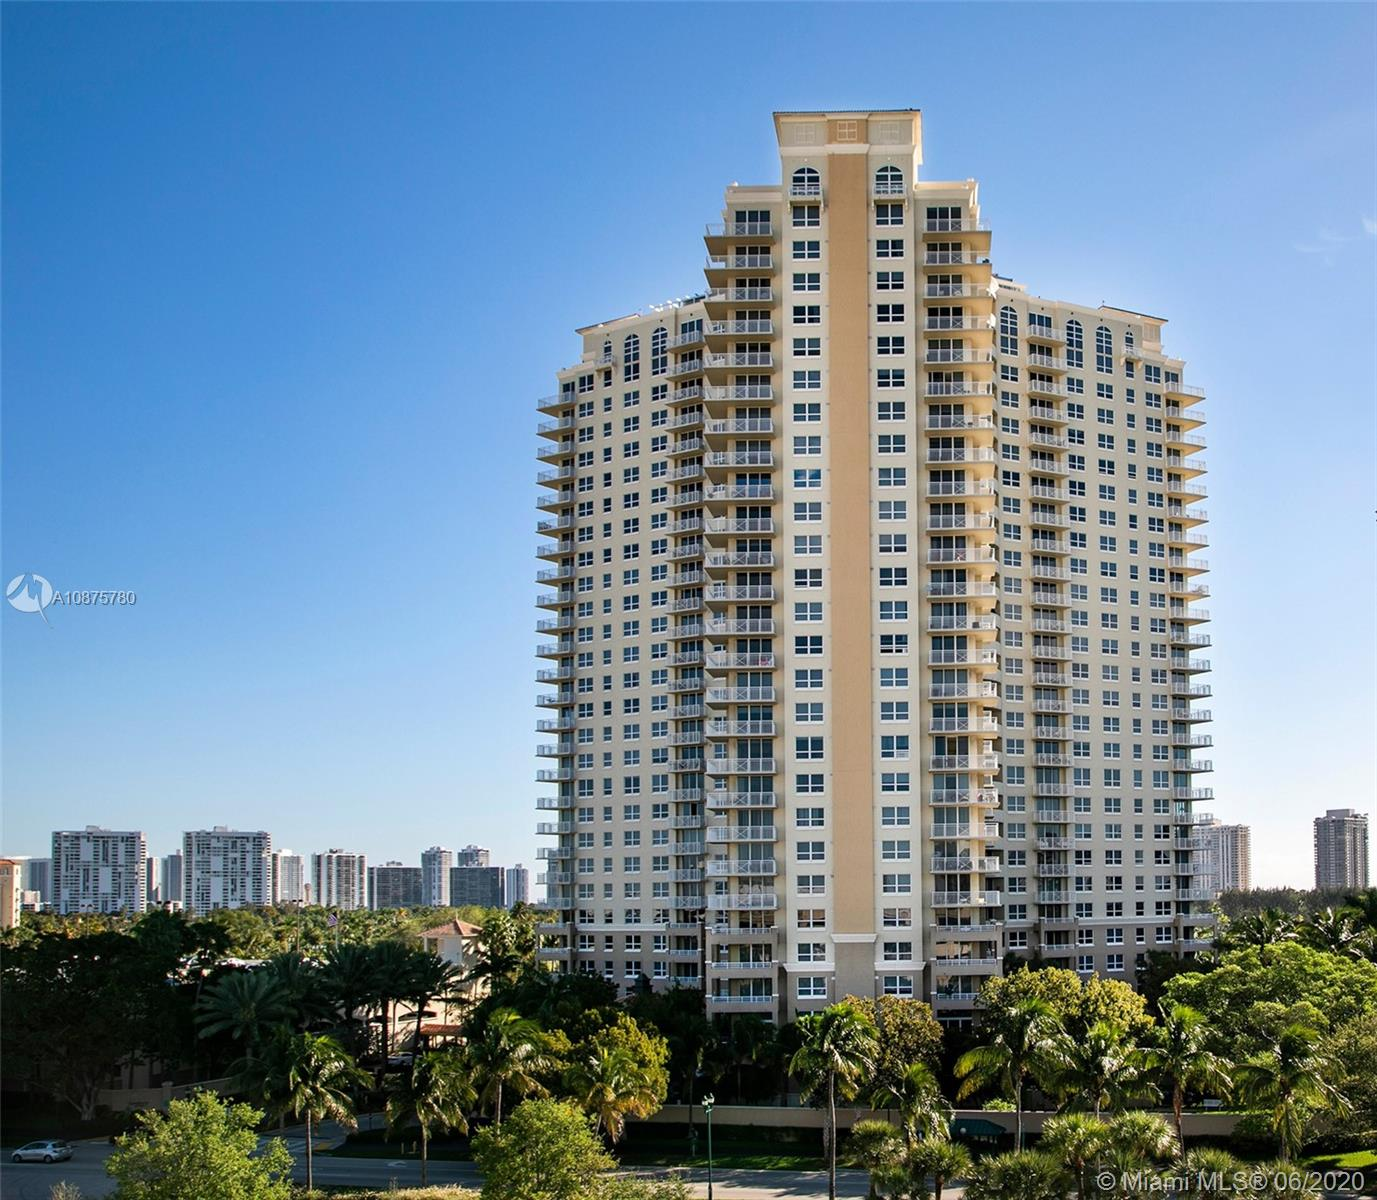 19501 W Country Club Dr #1103 For Sale A10875780, FL